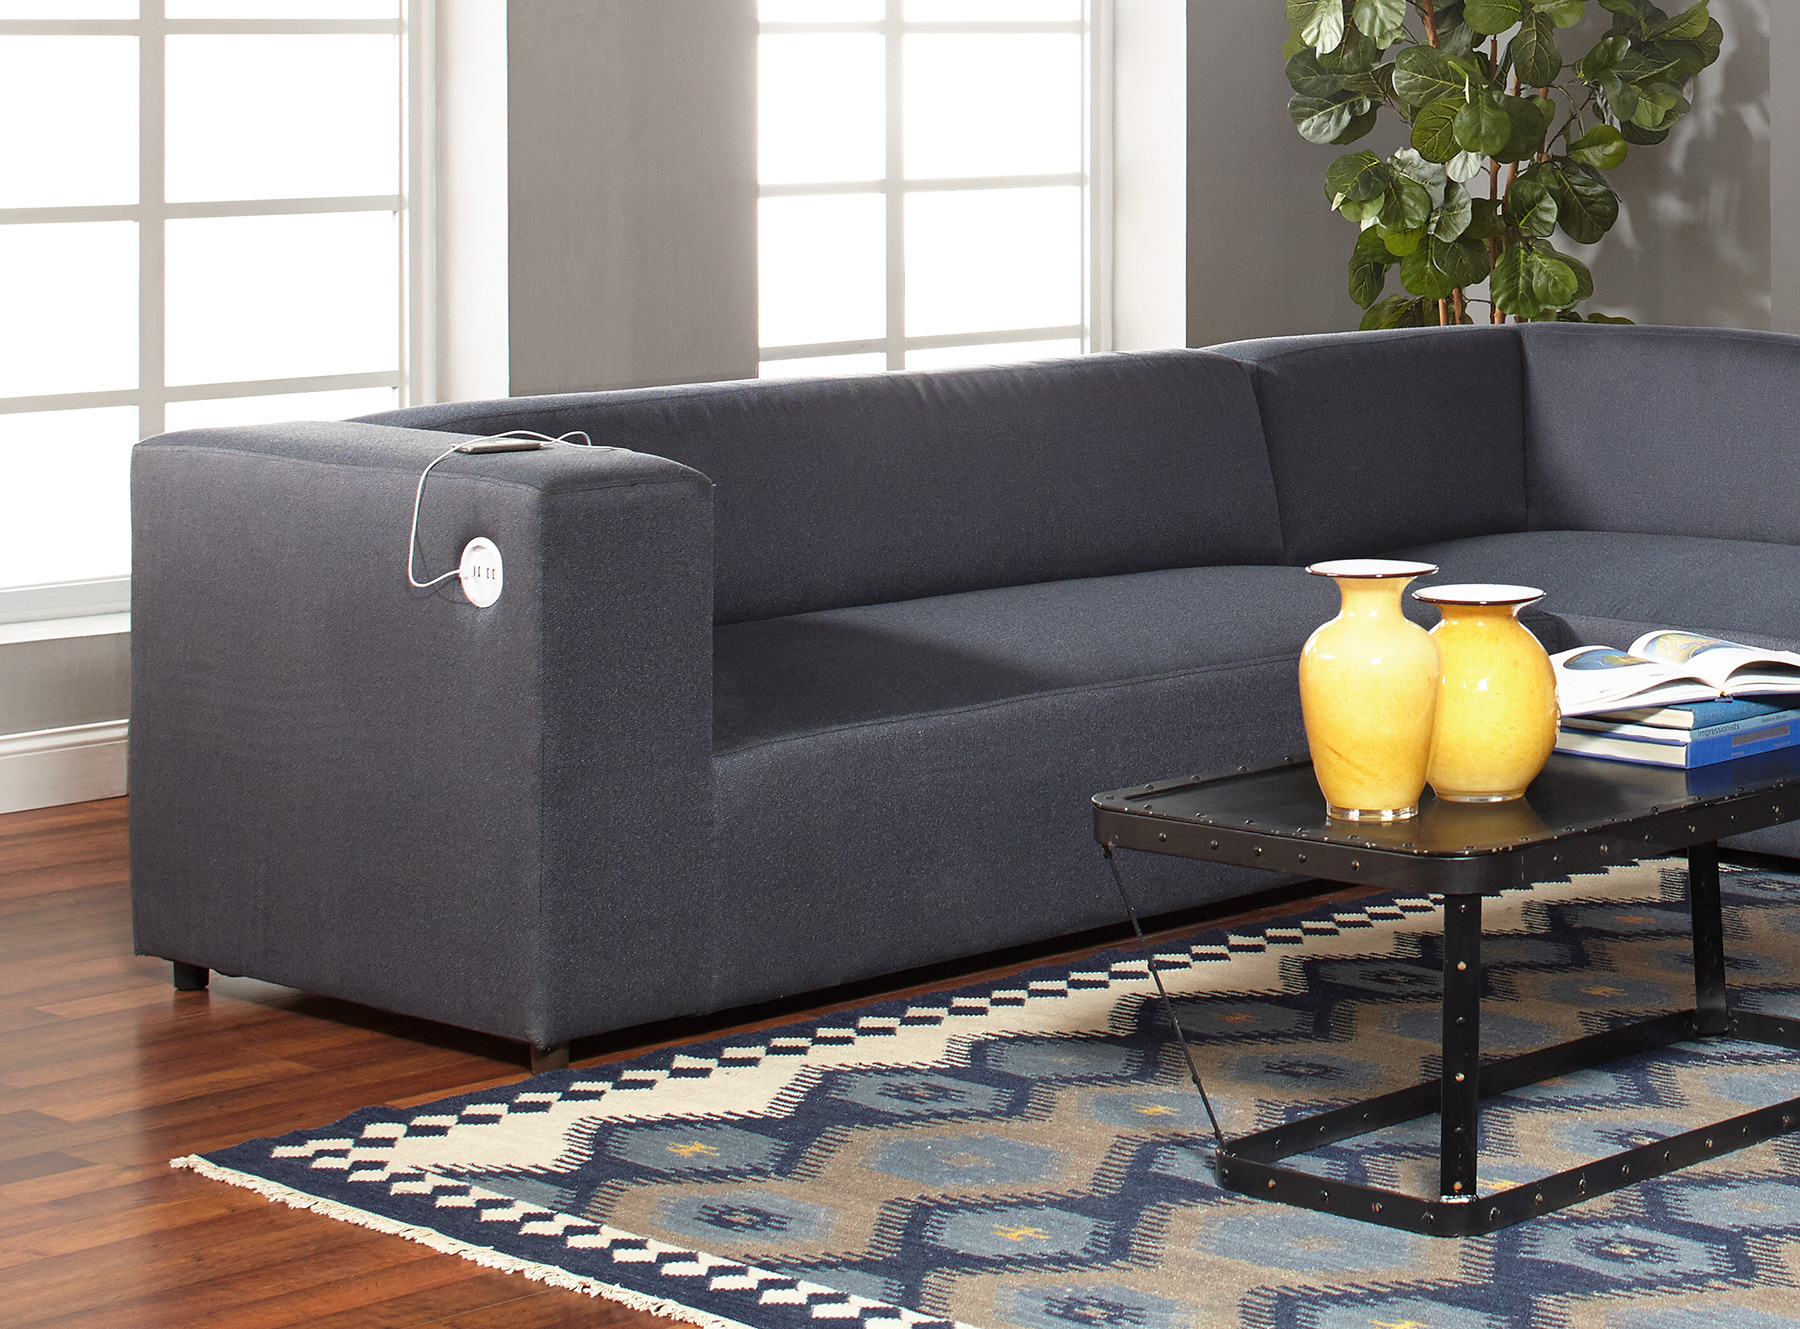 f3 can add smart technology to furniture